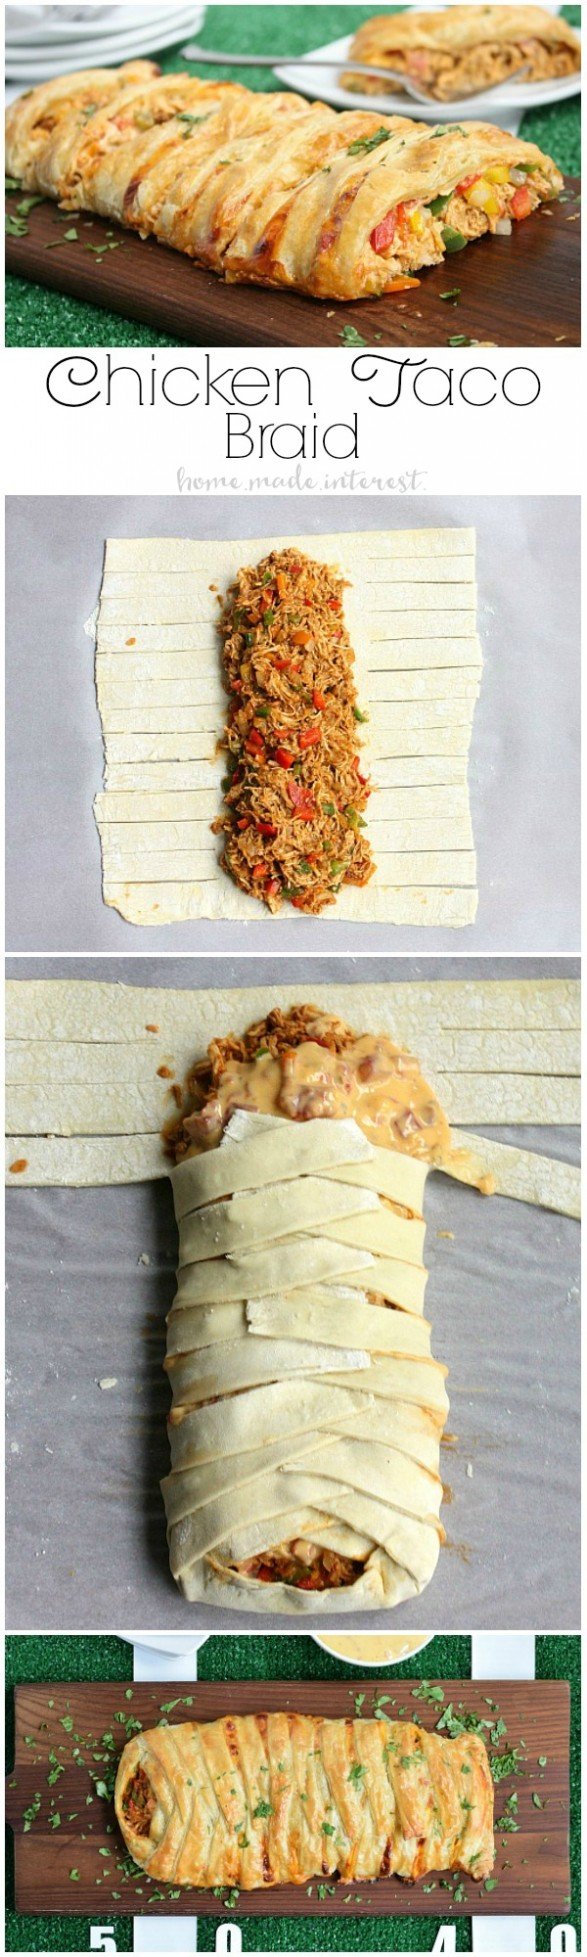 Chicken-Taco-Braid